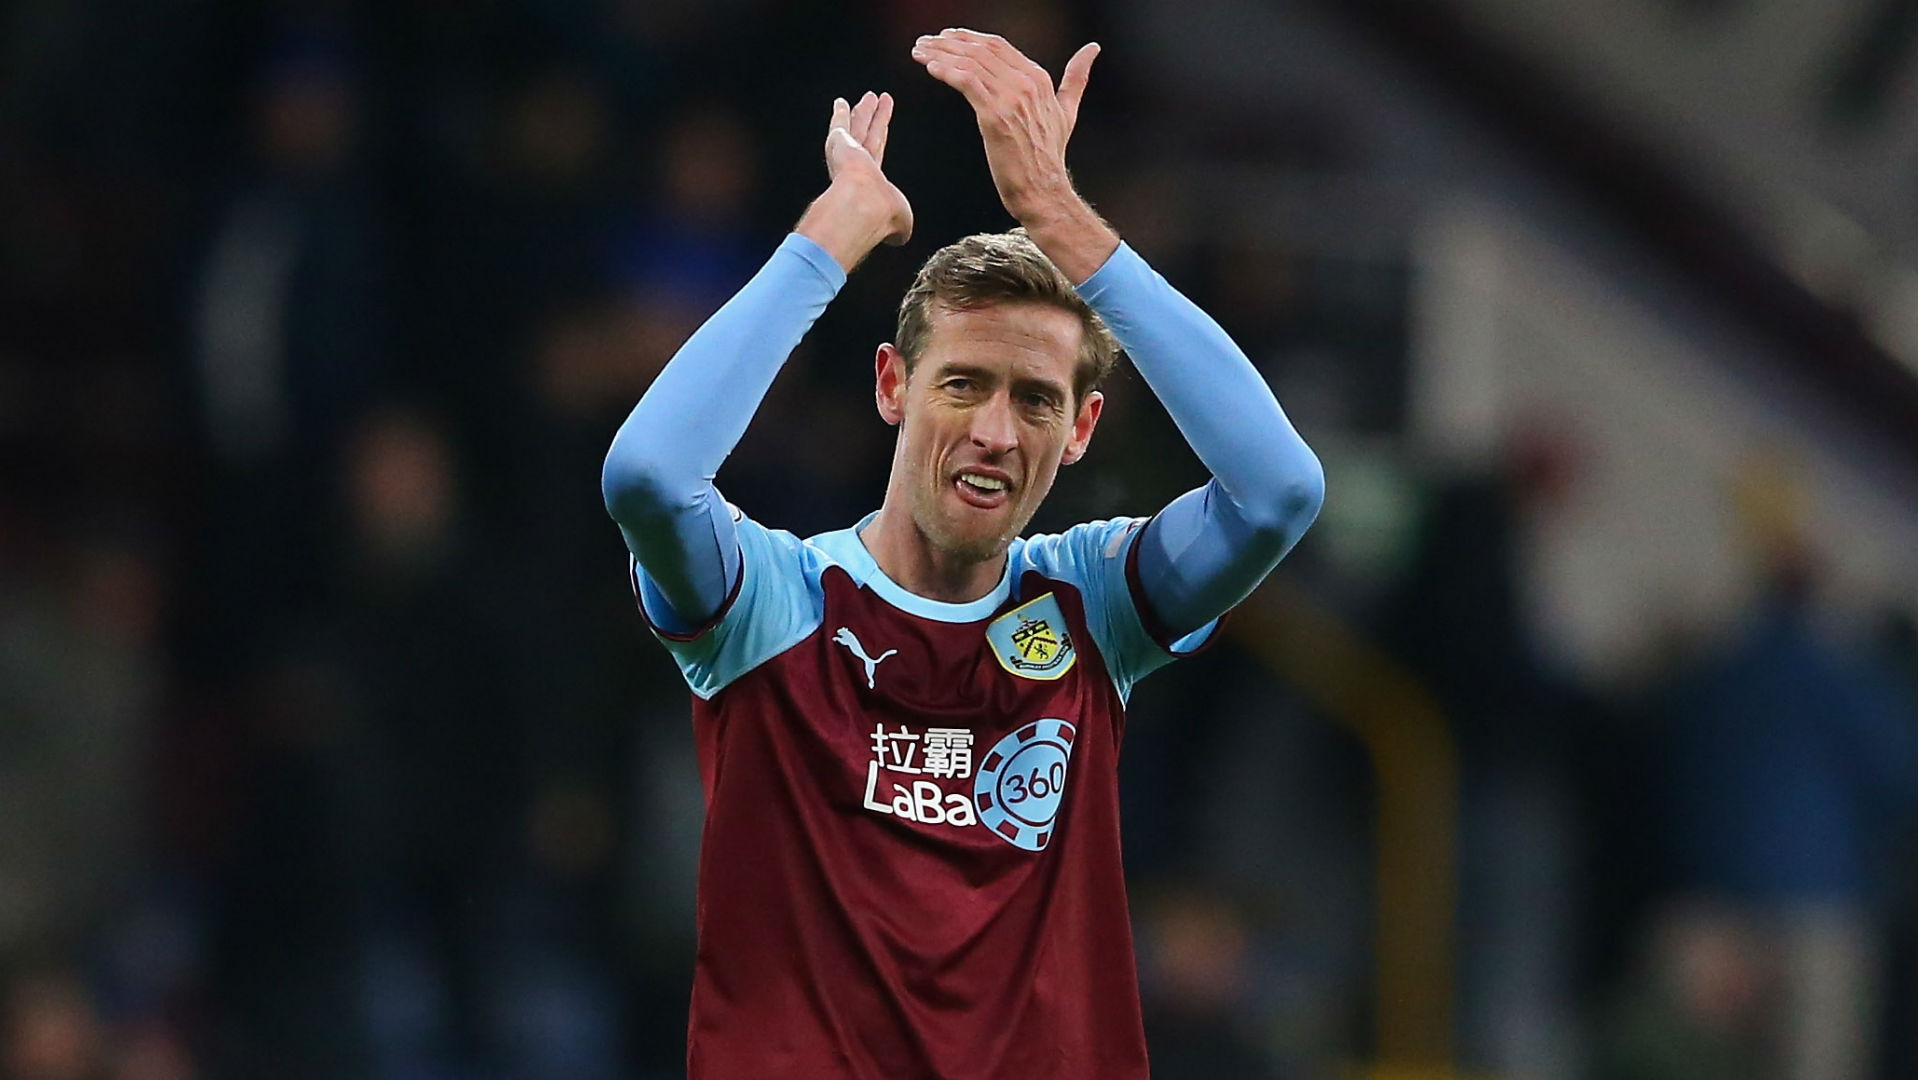 Having featured for England, Liverpool and Tottenham in a long career, Peter Crouch announced he has retired from professional football.